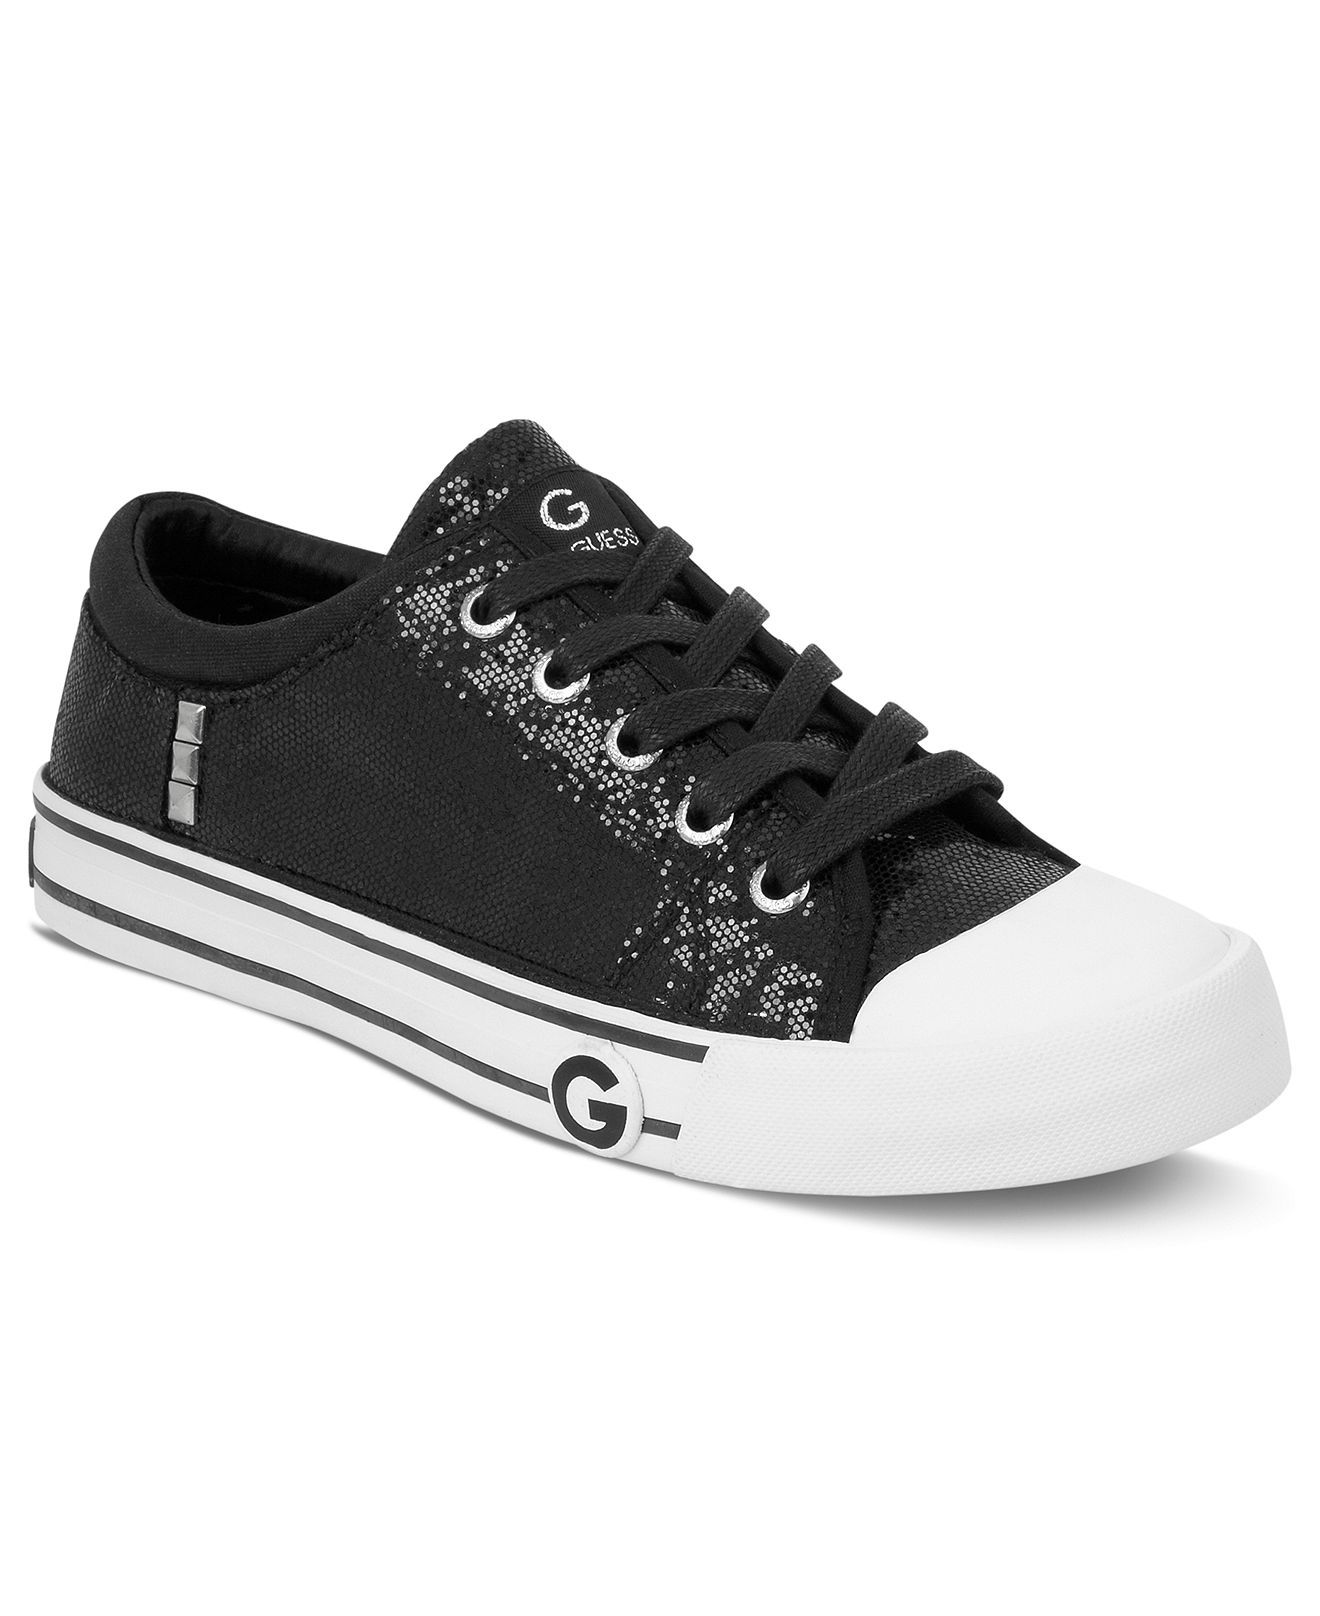 0b48e131d52 Oona Sneakers in Black Glitter - G by GUESS Fall Shoes, Women's Shoes, Shoe